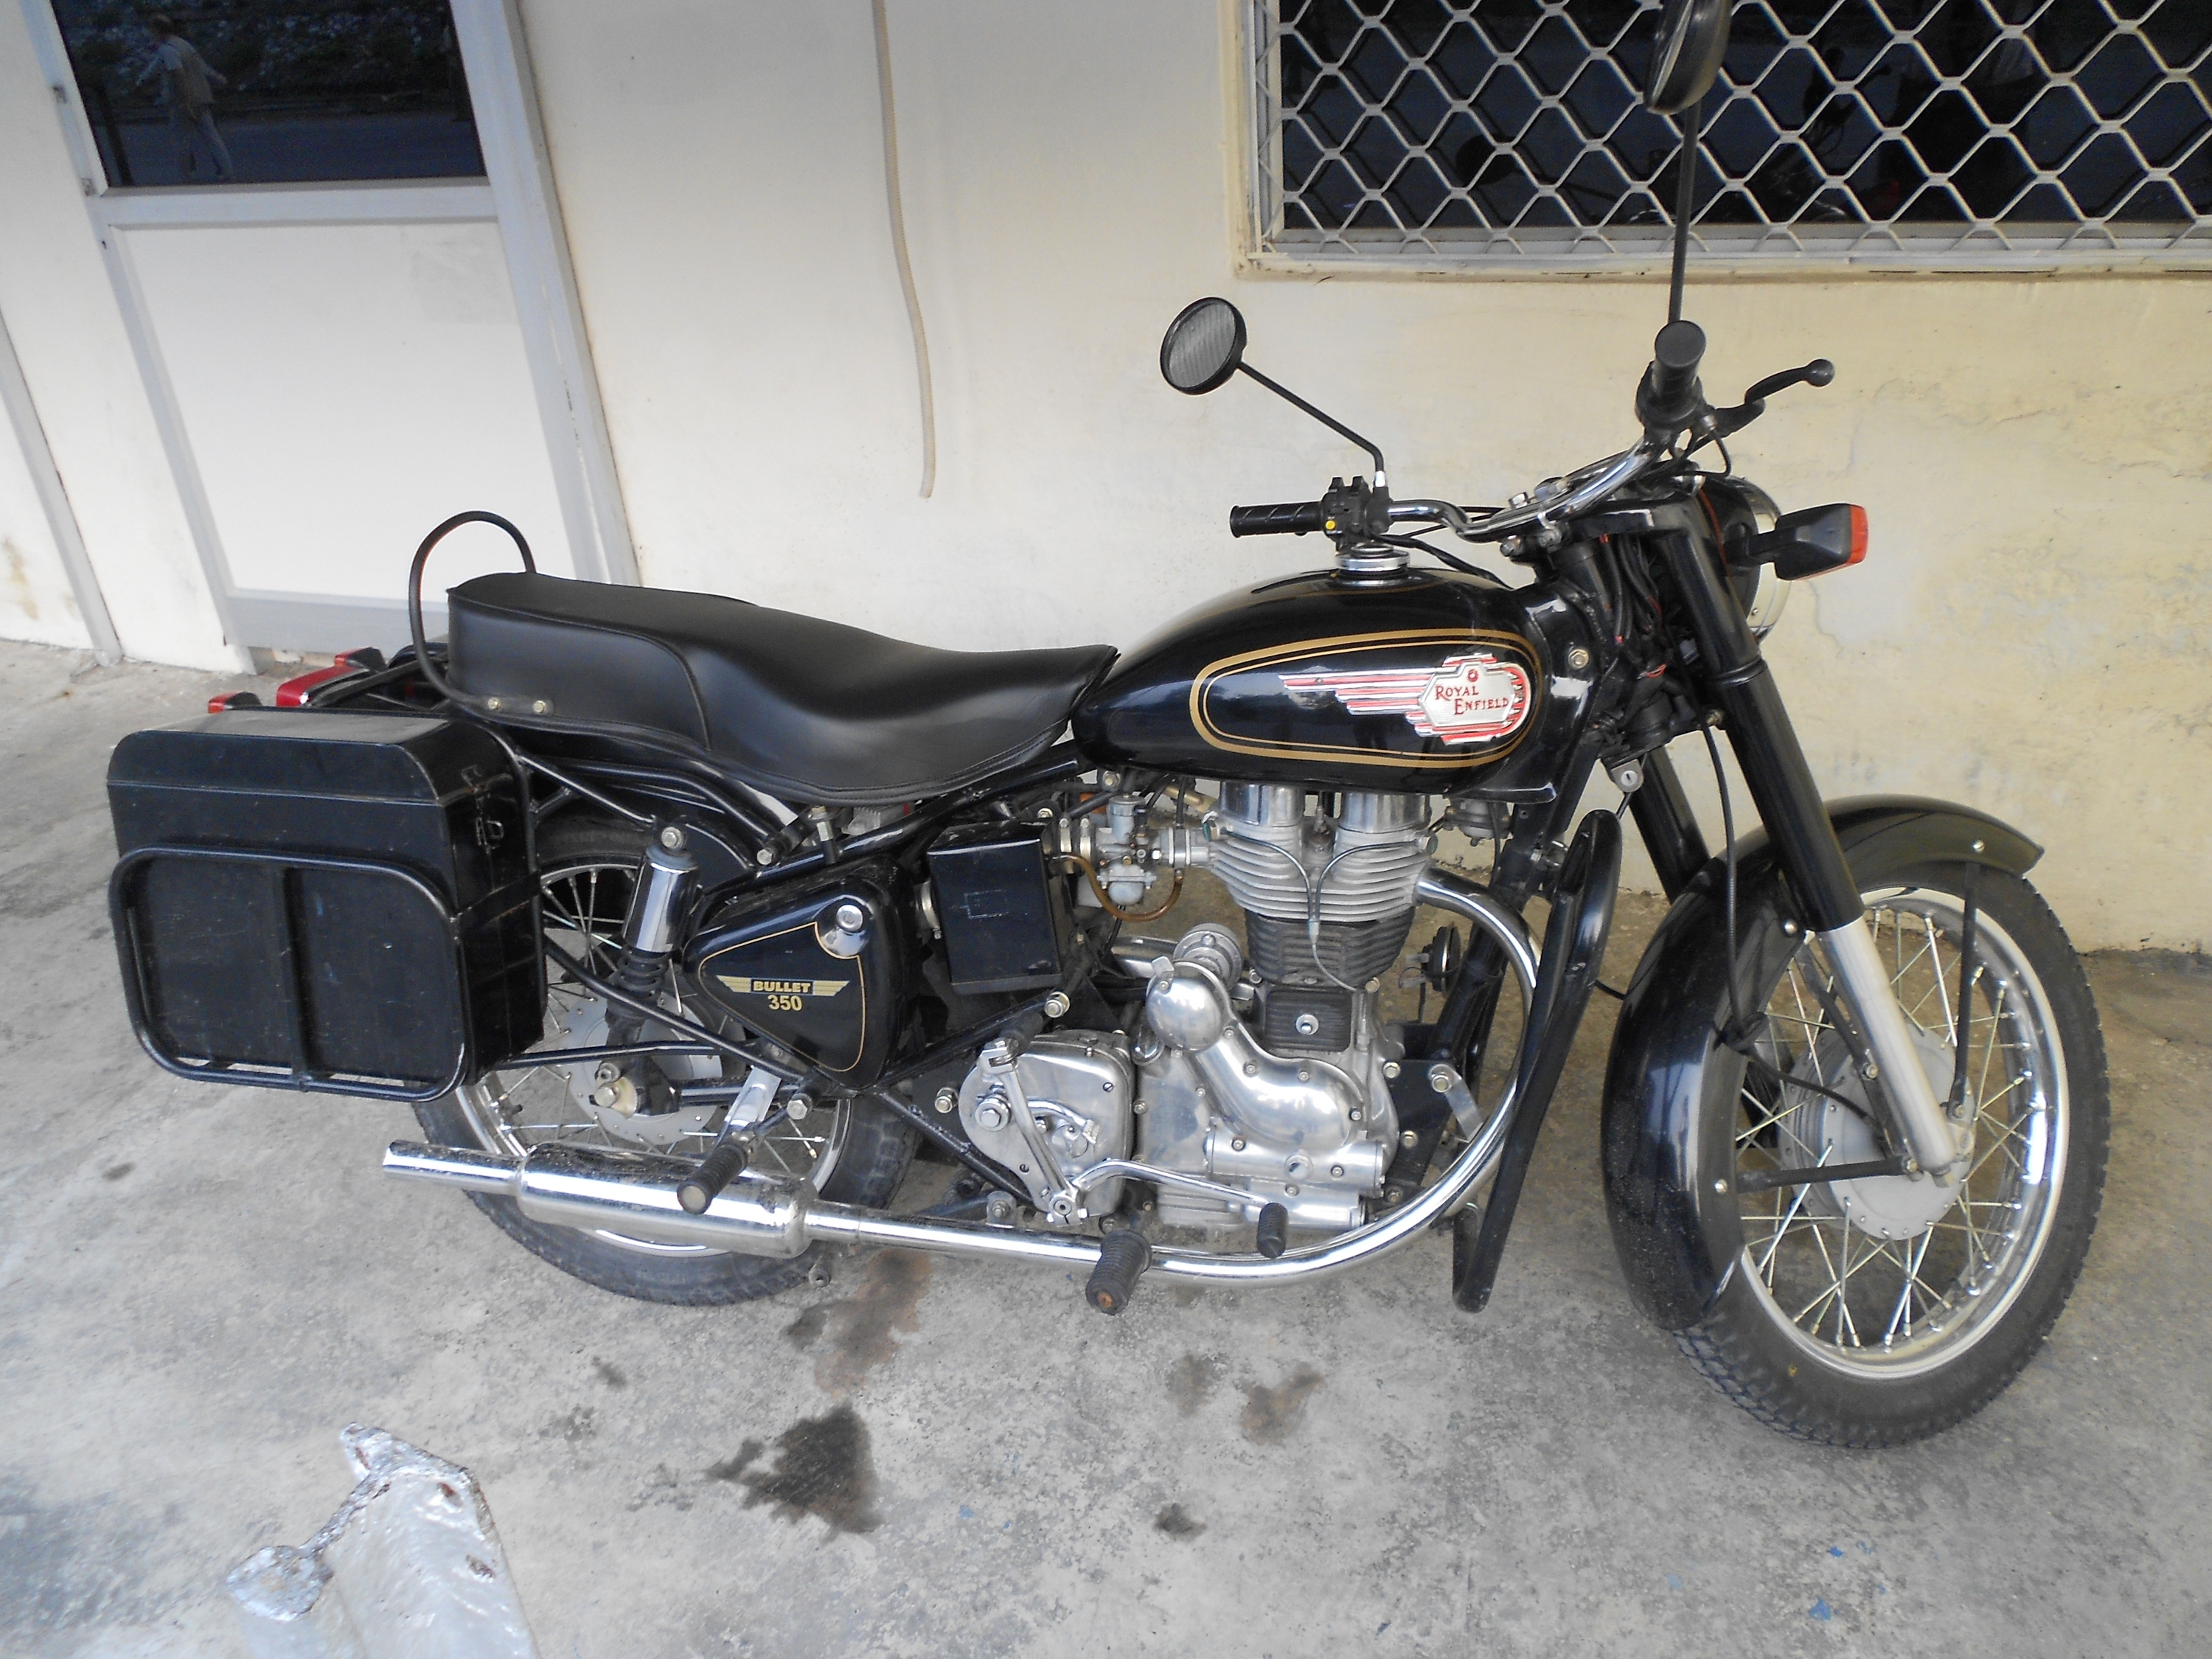 Royal Enfield Bullet 350 Army 2004 images #126526